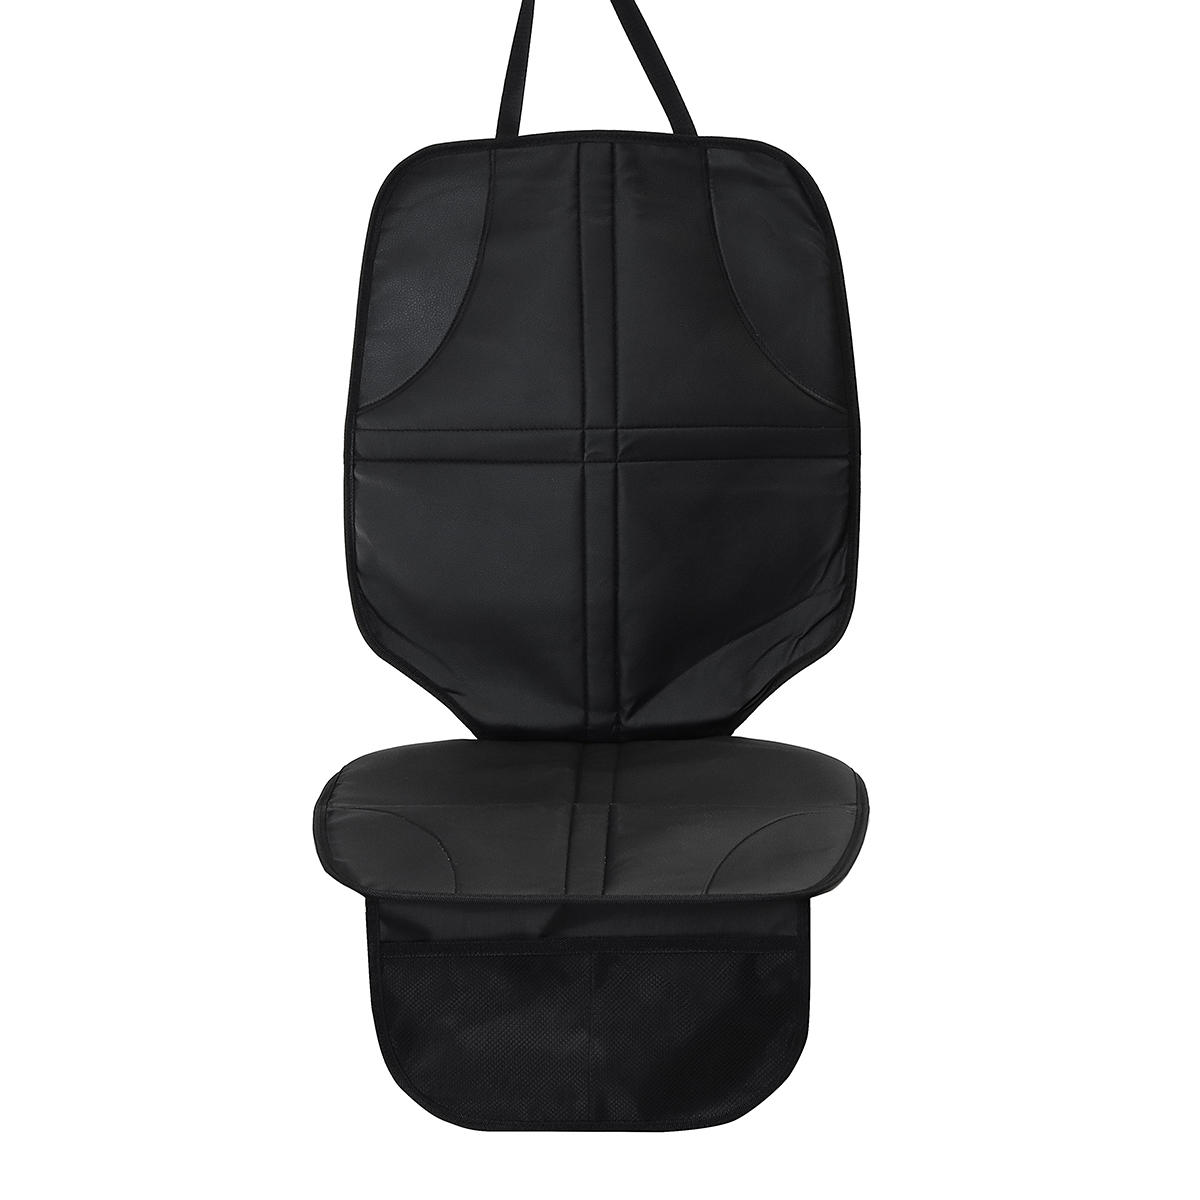 Single Long Black 55cm Leather With Pocket baby Car Seat Cushion Non-slip Wear-resistant Anti-dirty Waterproof Pad